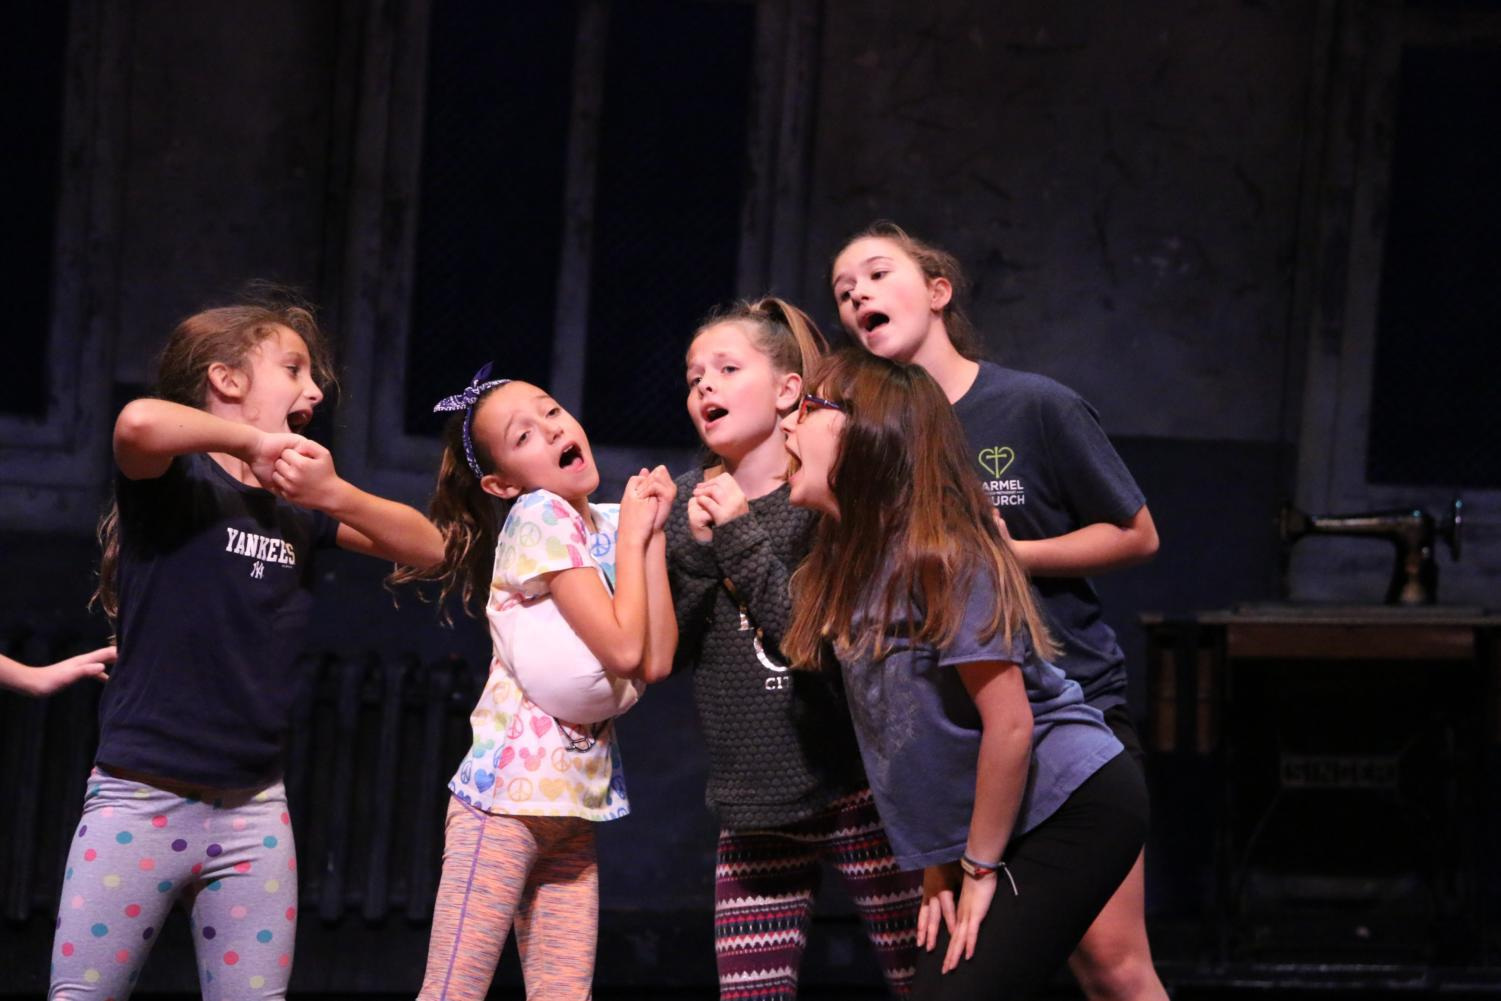 """Freshman Emily Chrzanowski, second from the right, rehearses a number from the Booth Tarkington Civic Theatre's production of """"Annie"""" as an orphan. As a freshman, Chrzanowski has to manage her first year of high school with hours of rehearsal each week."""